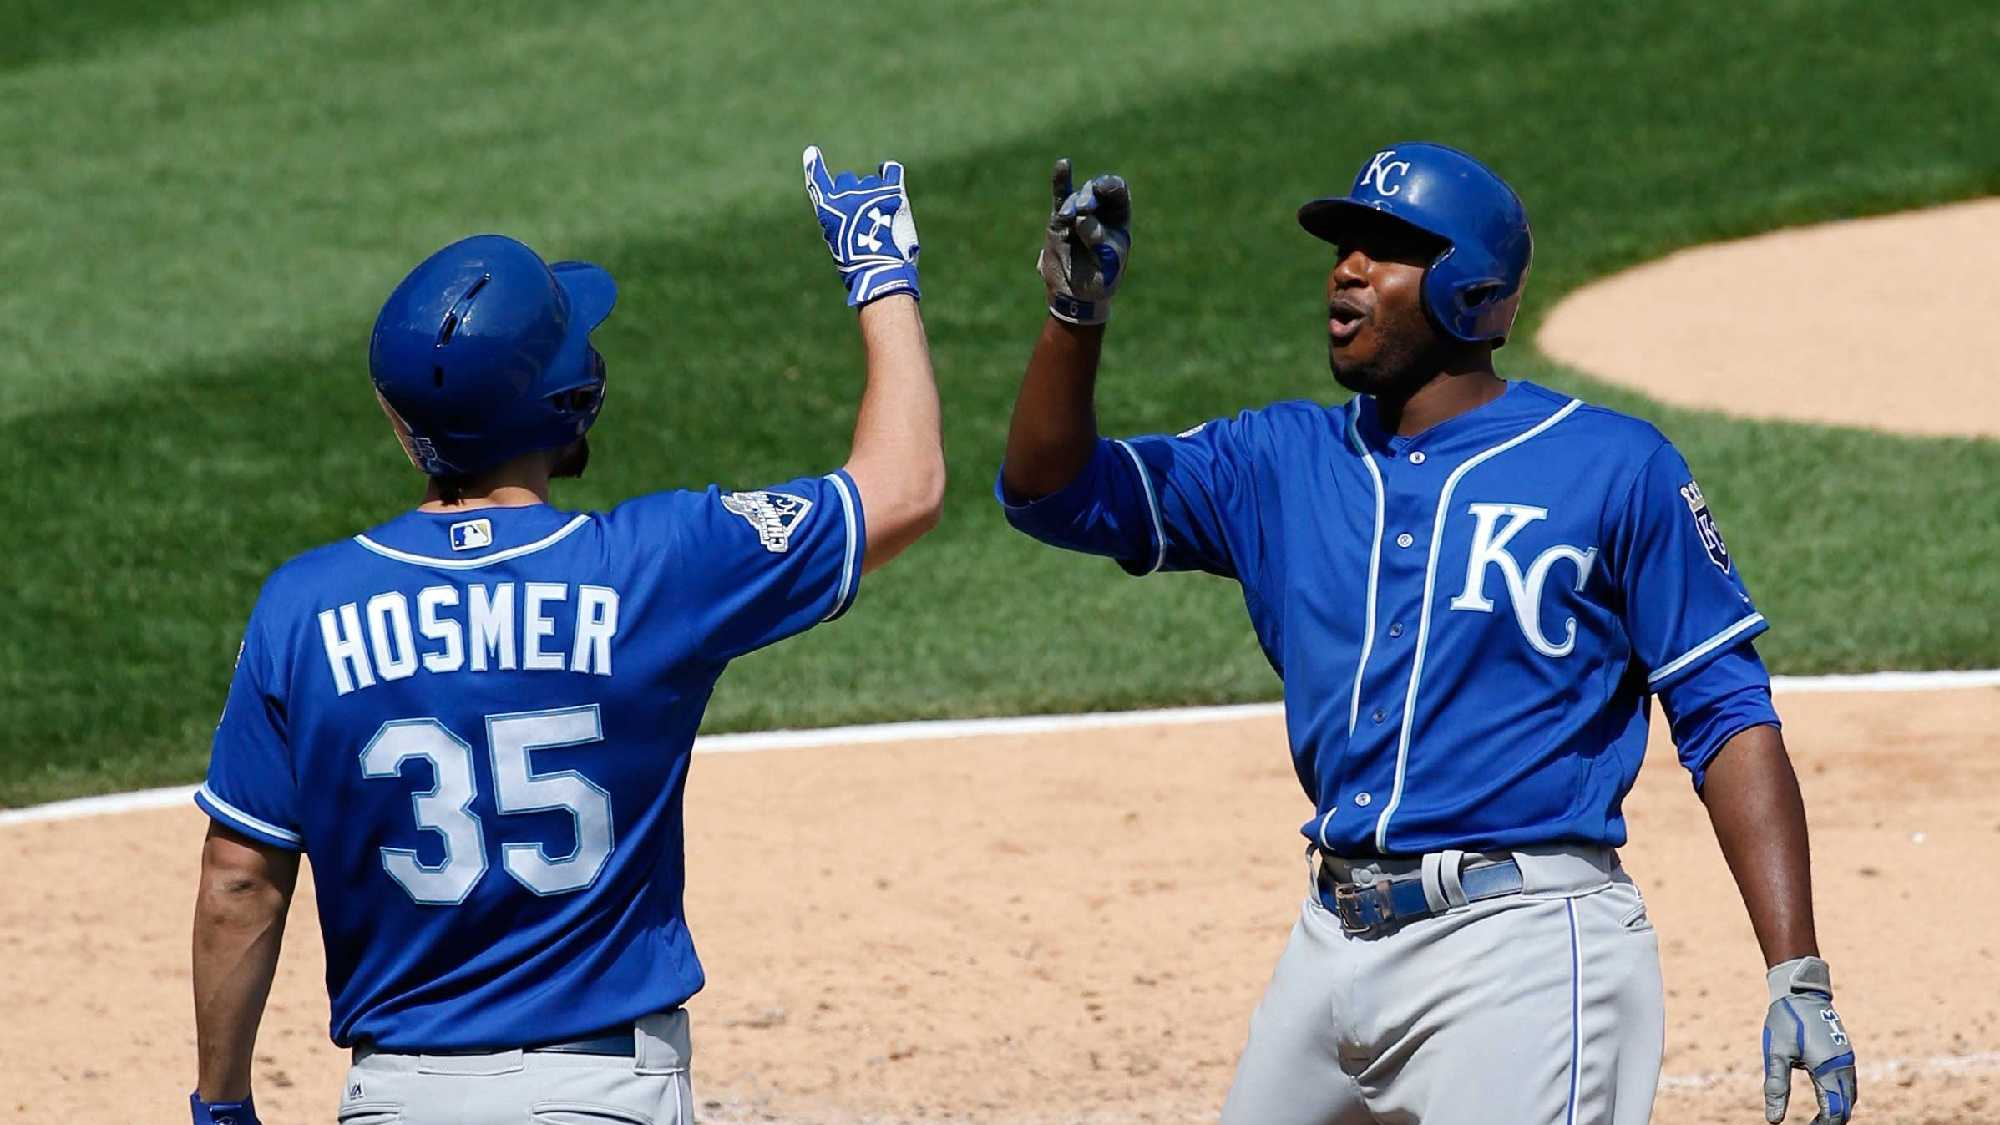 Kansas City Royals' Lorenzo Cain, right, celebrates with Eric Hosmer after hitting a solo home run during the sixth inning of a baseball game against the Chicago White Sox Saturday, May 21, 2016, in Chicago. (AP Photo/Nam Y. Huh)